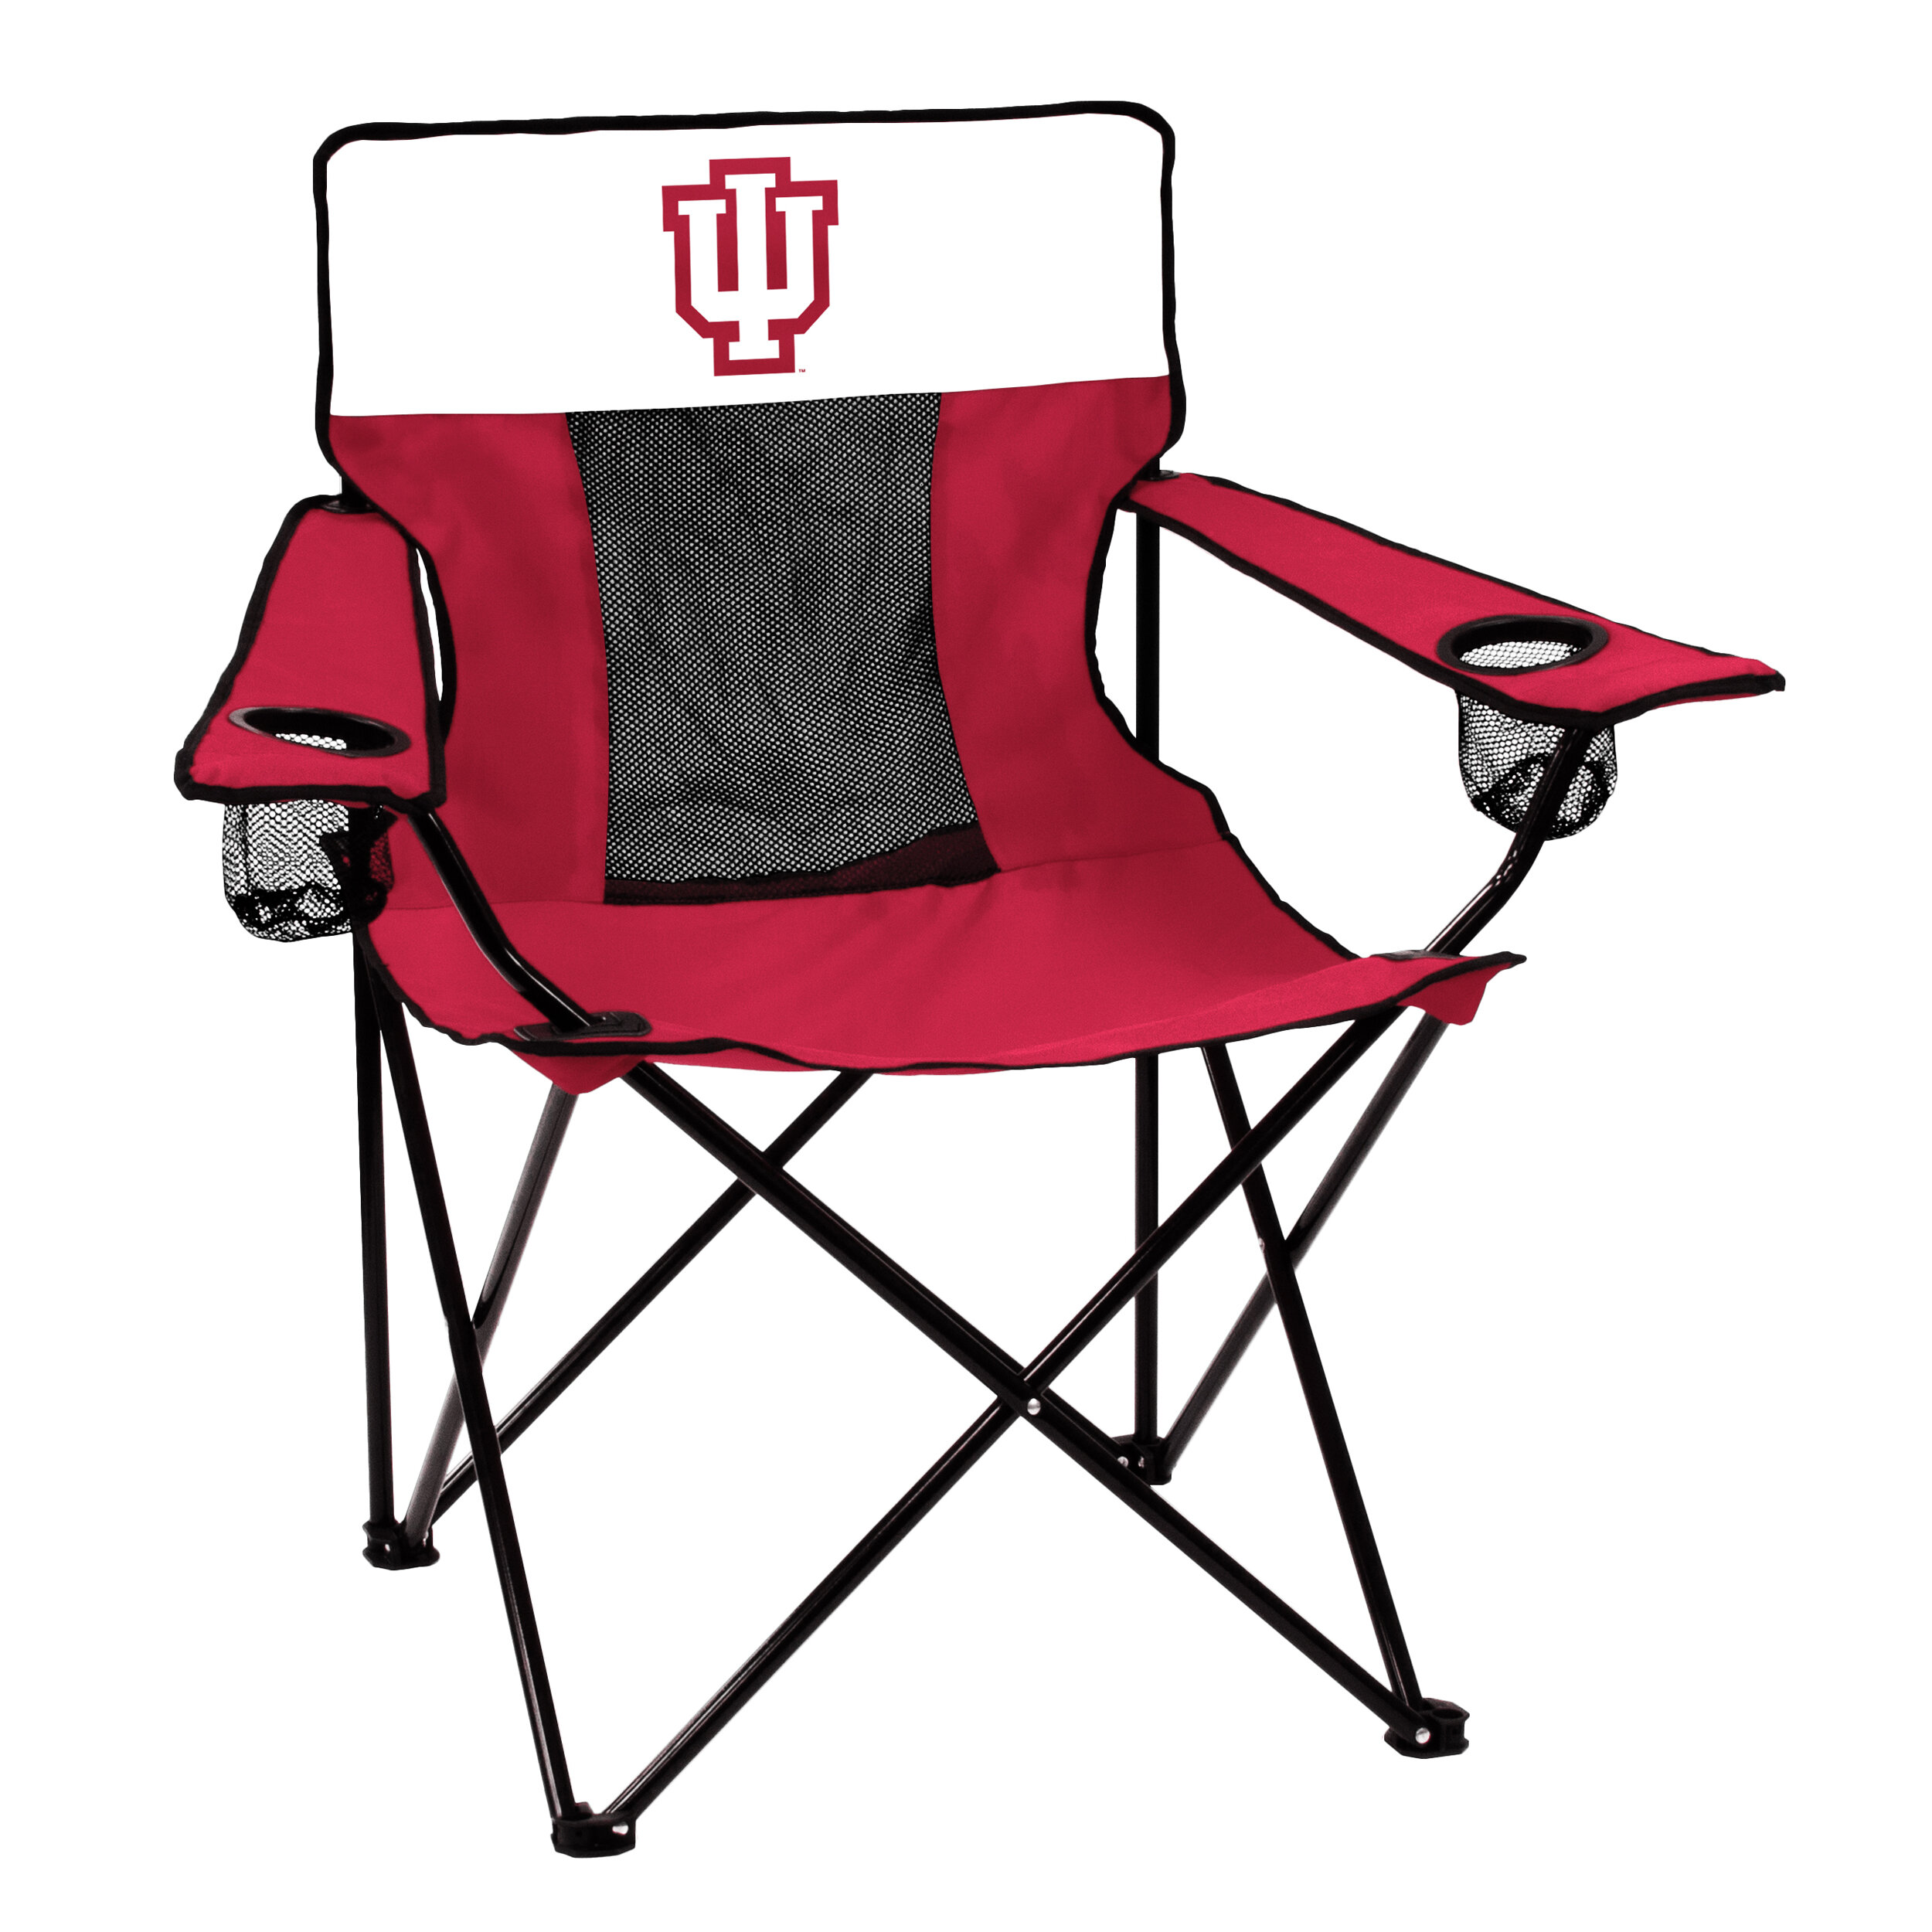 Camping Chair Deals Taketheduck Com